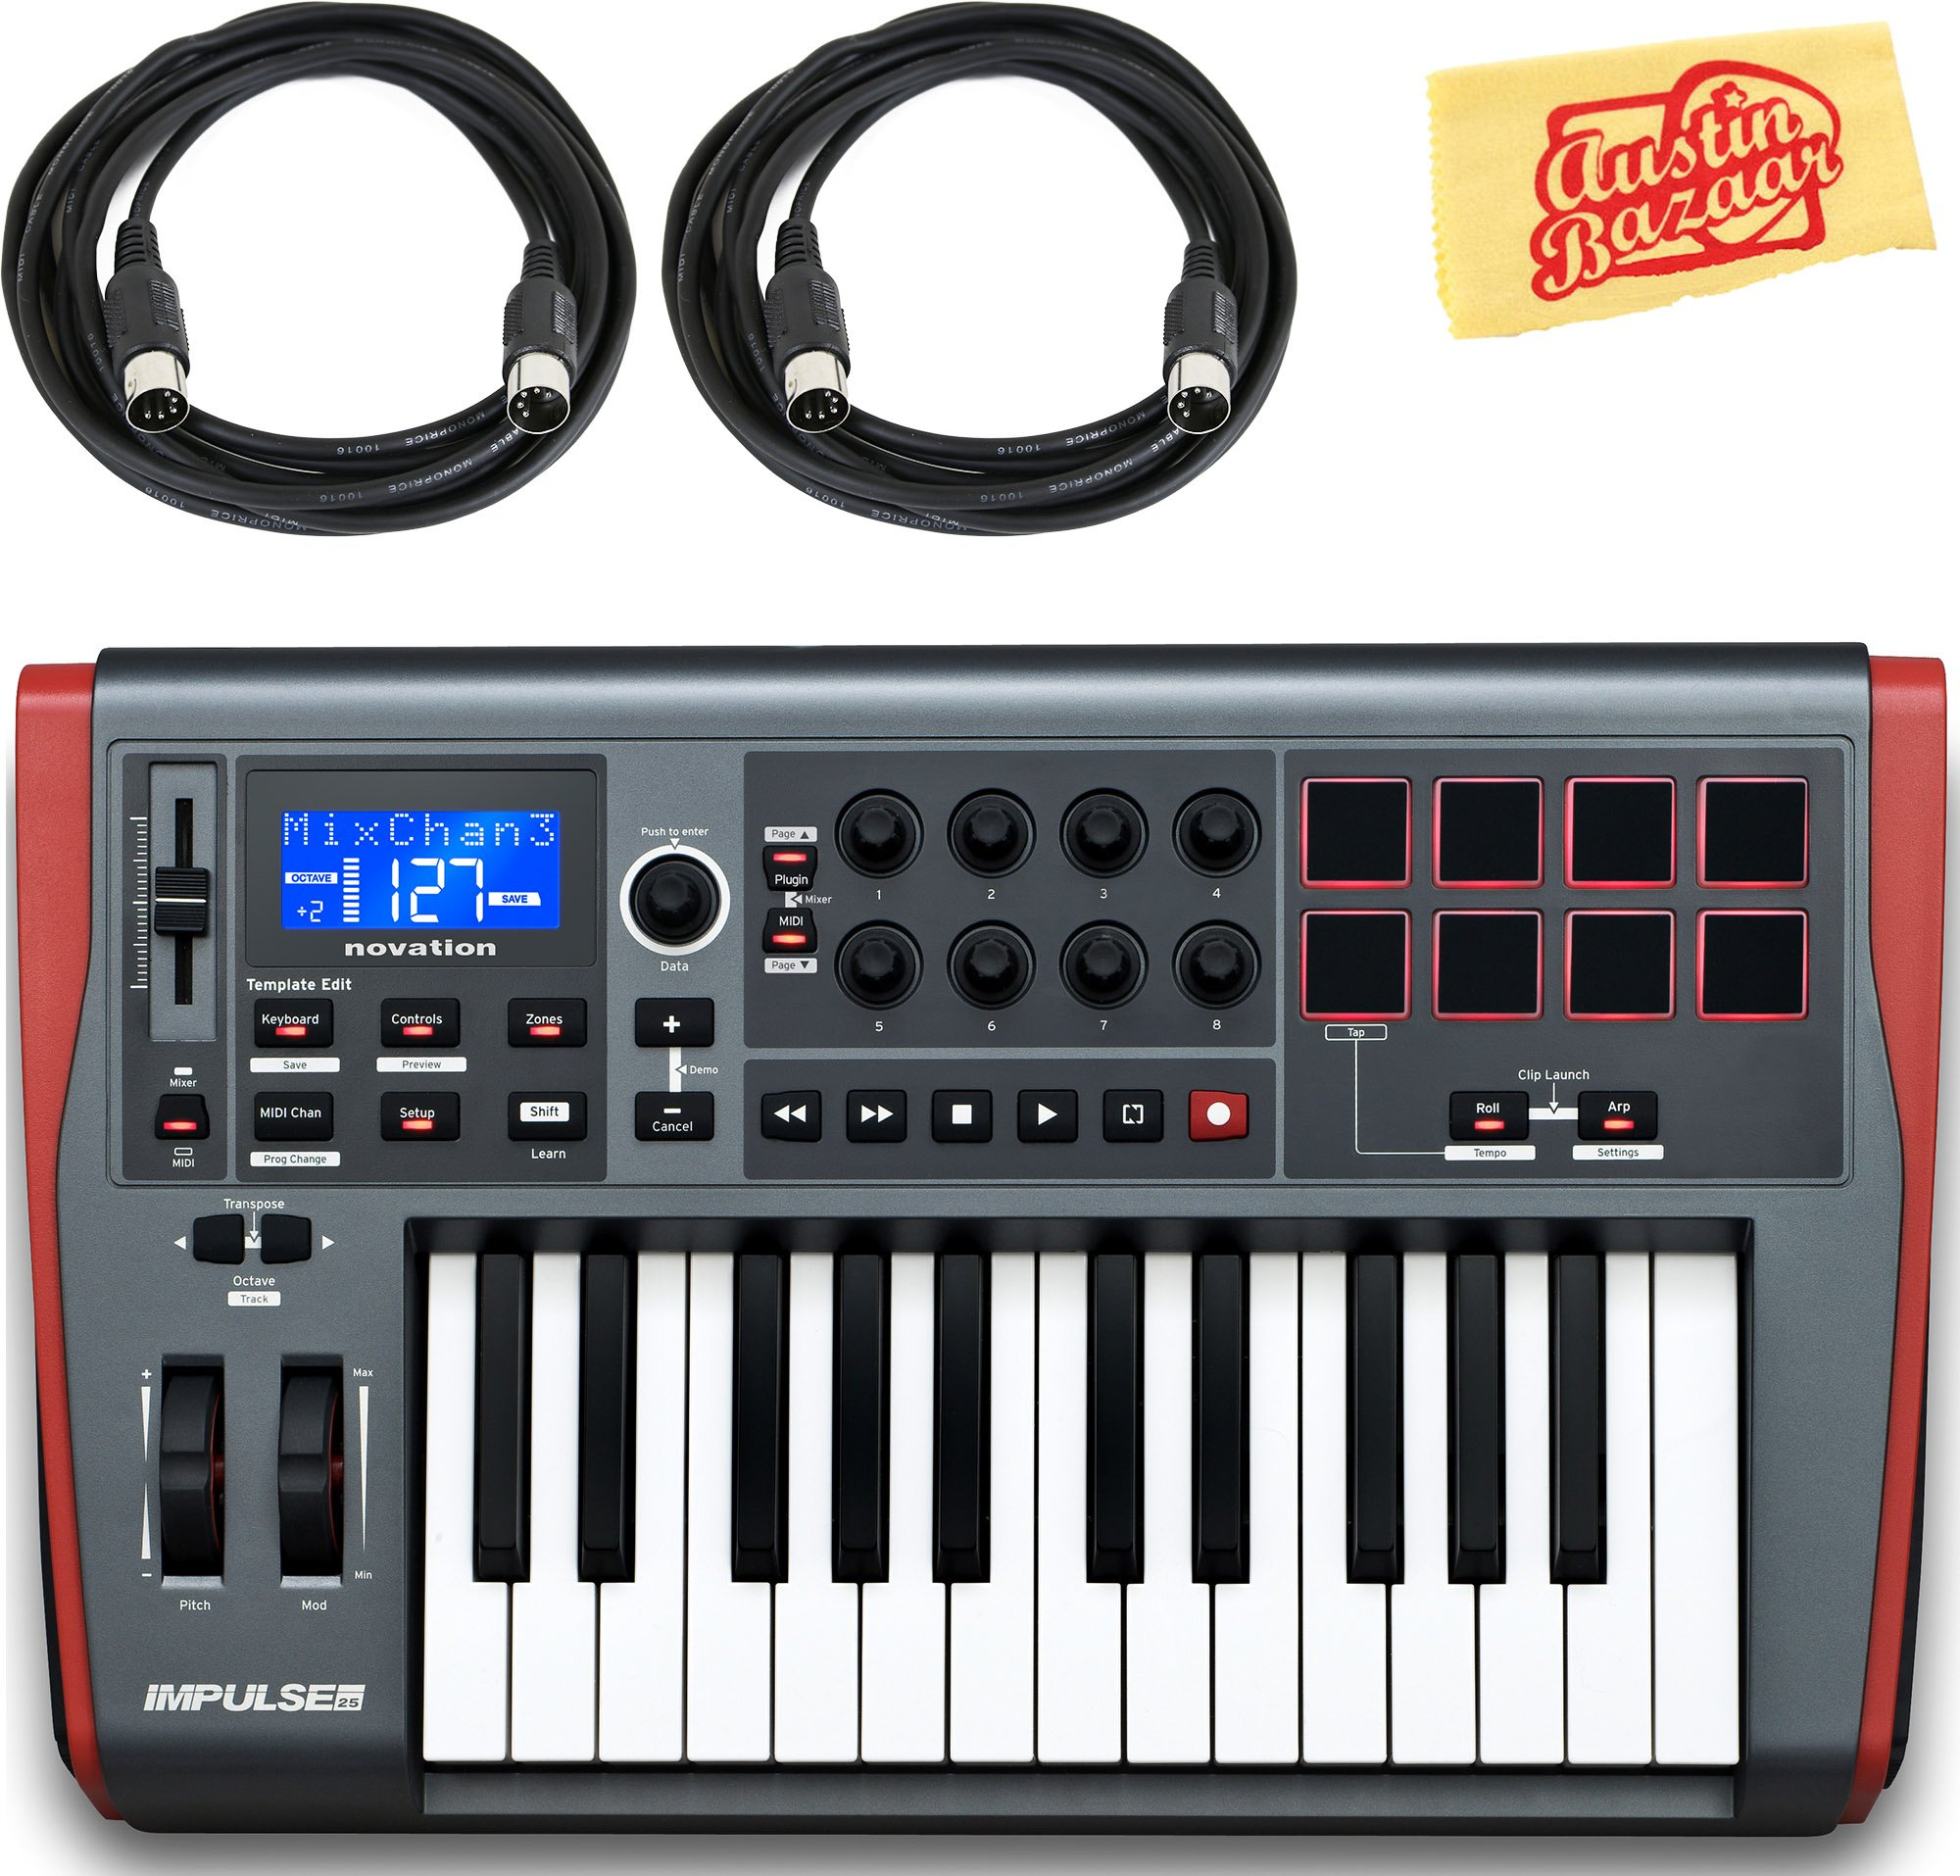 Novation Impulse 25 Keyboard Bundle with MIDI Cables and Austin Bazaar Polishing Cloth by Novation (Image #1)